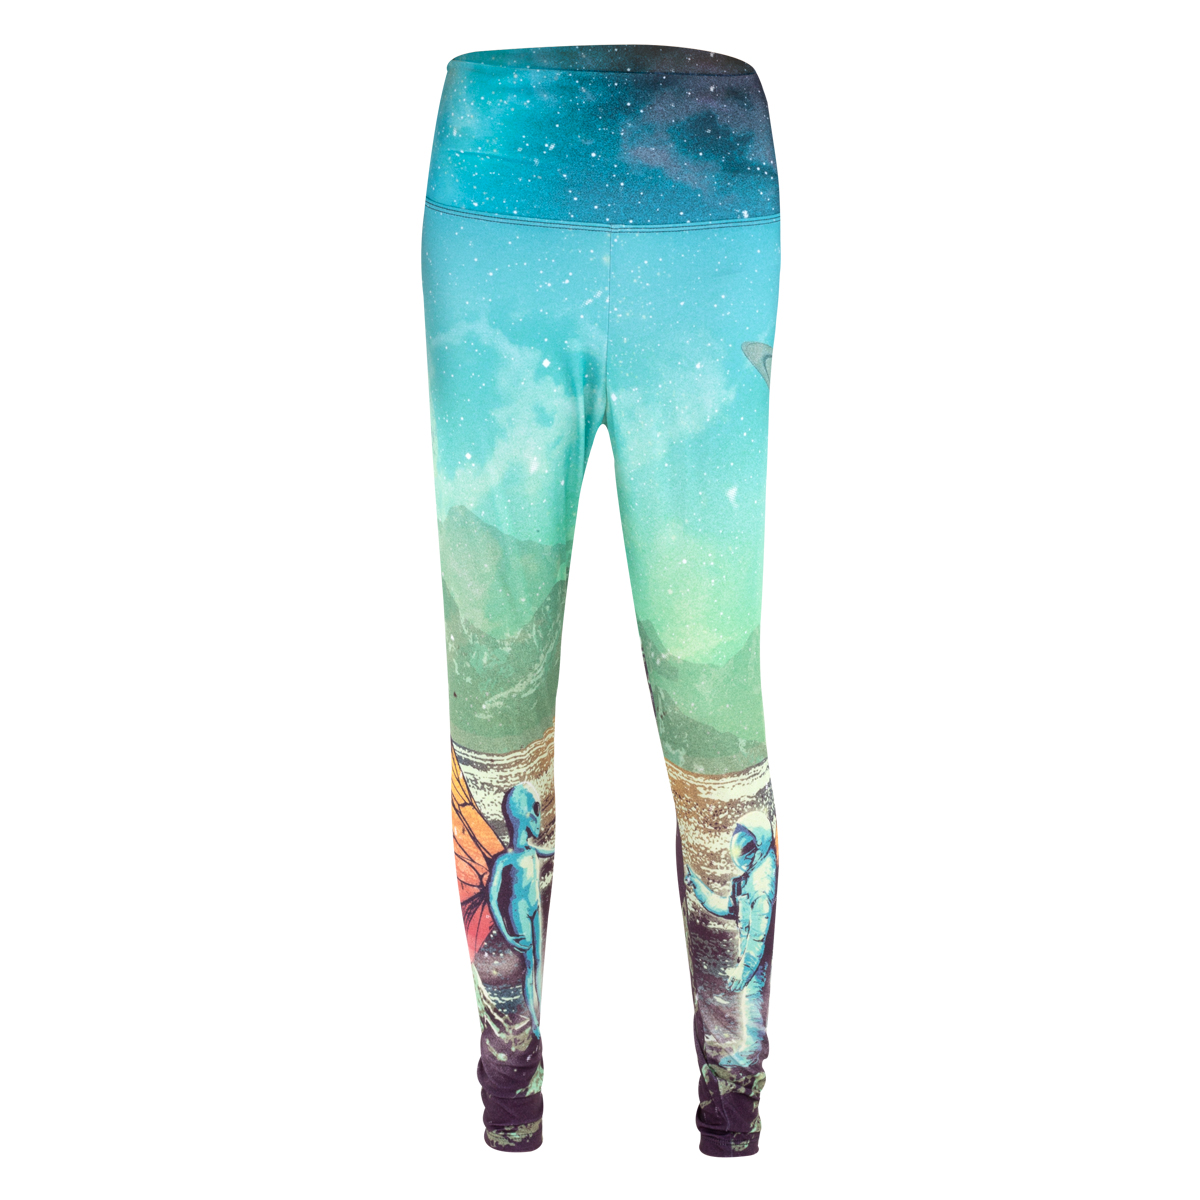 Alien Astronaut Leggings